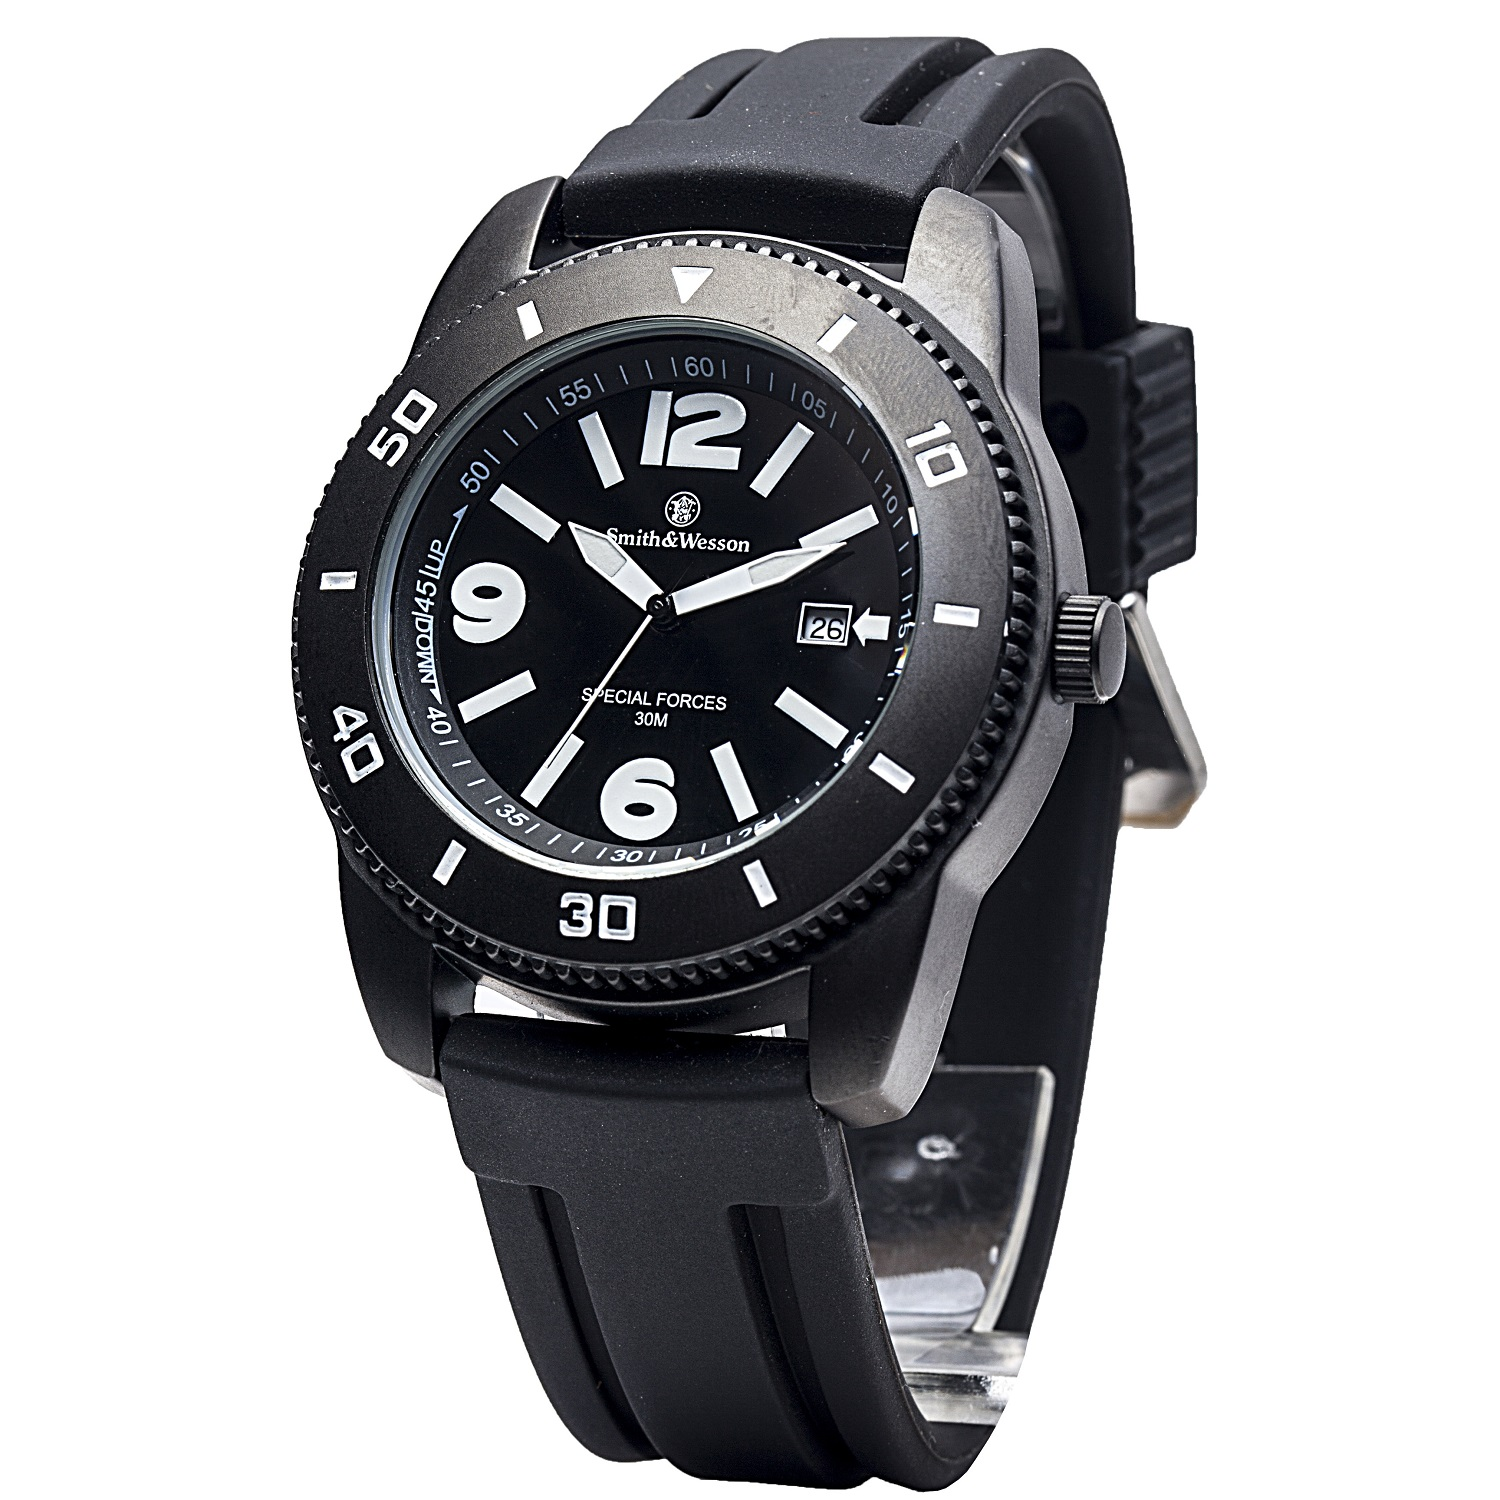 Smith & Wesson Paratrooper Watch with Black Rubber Strap